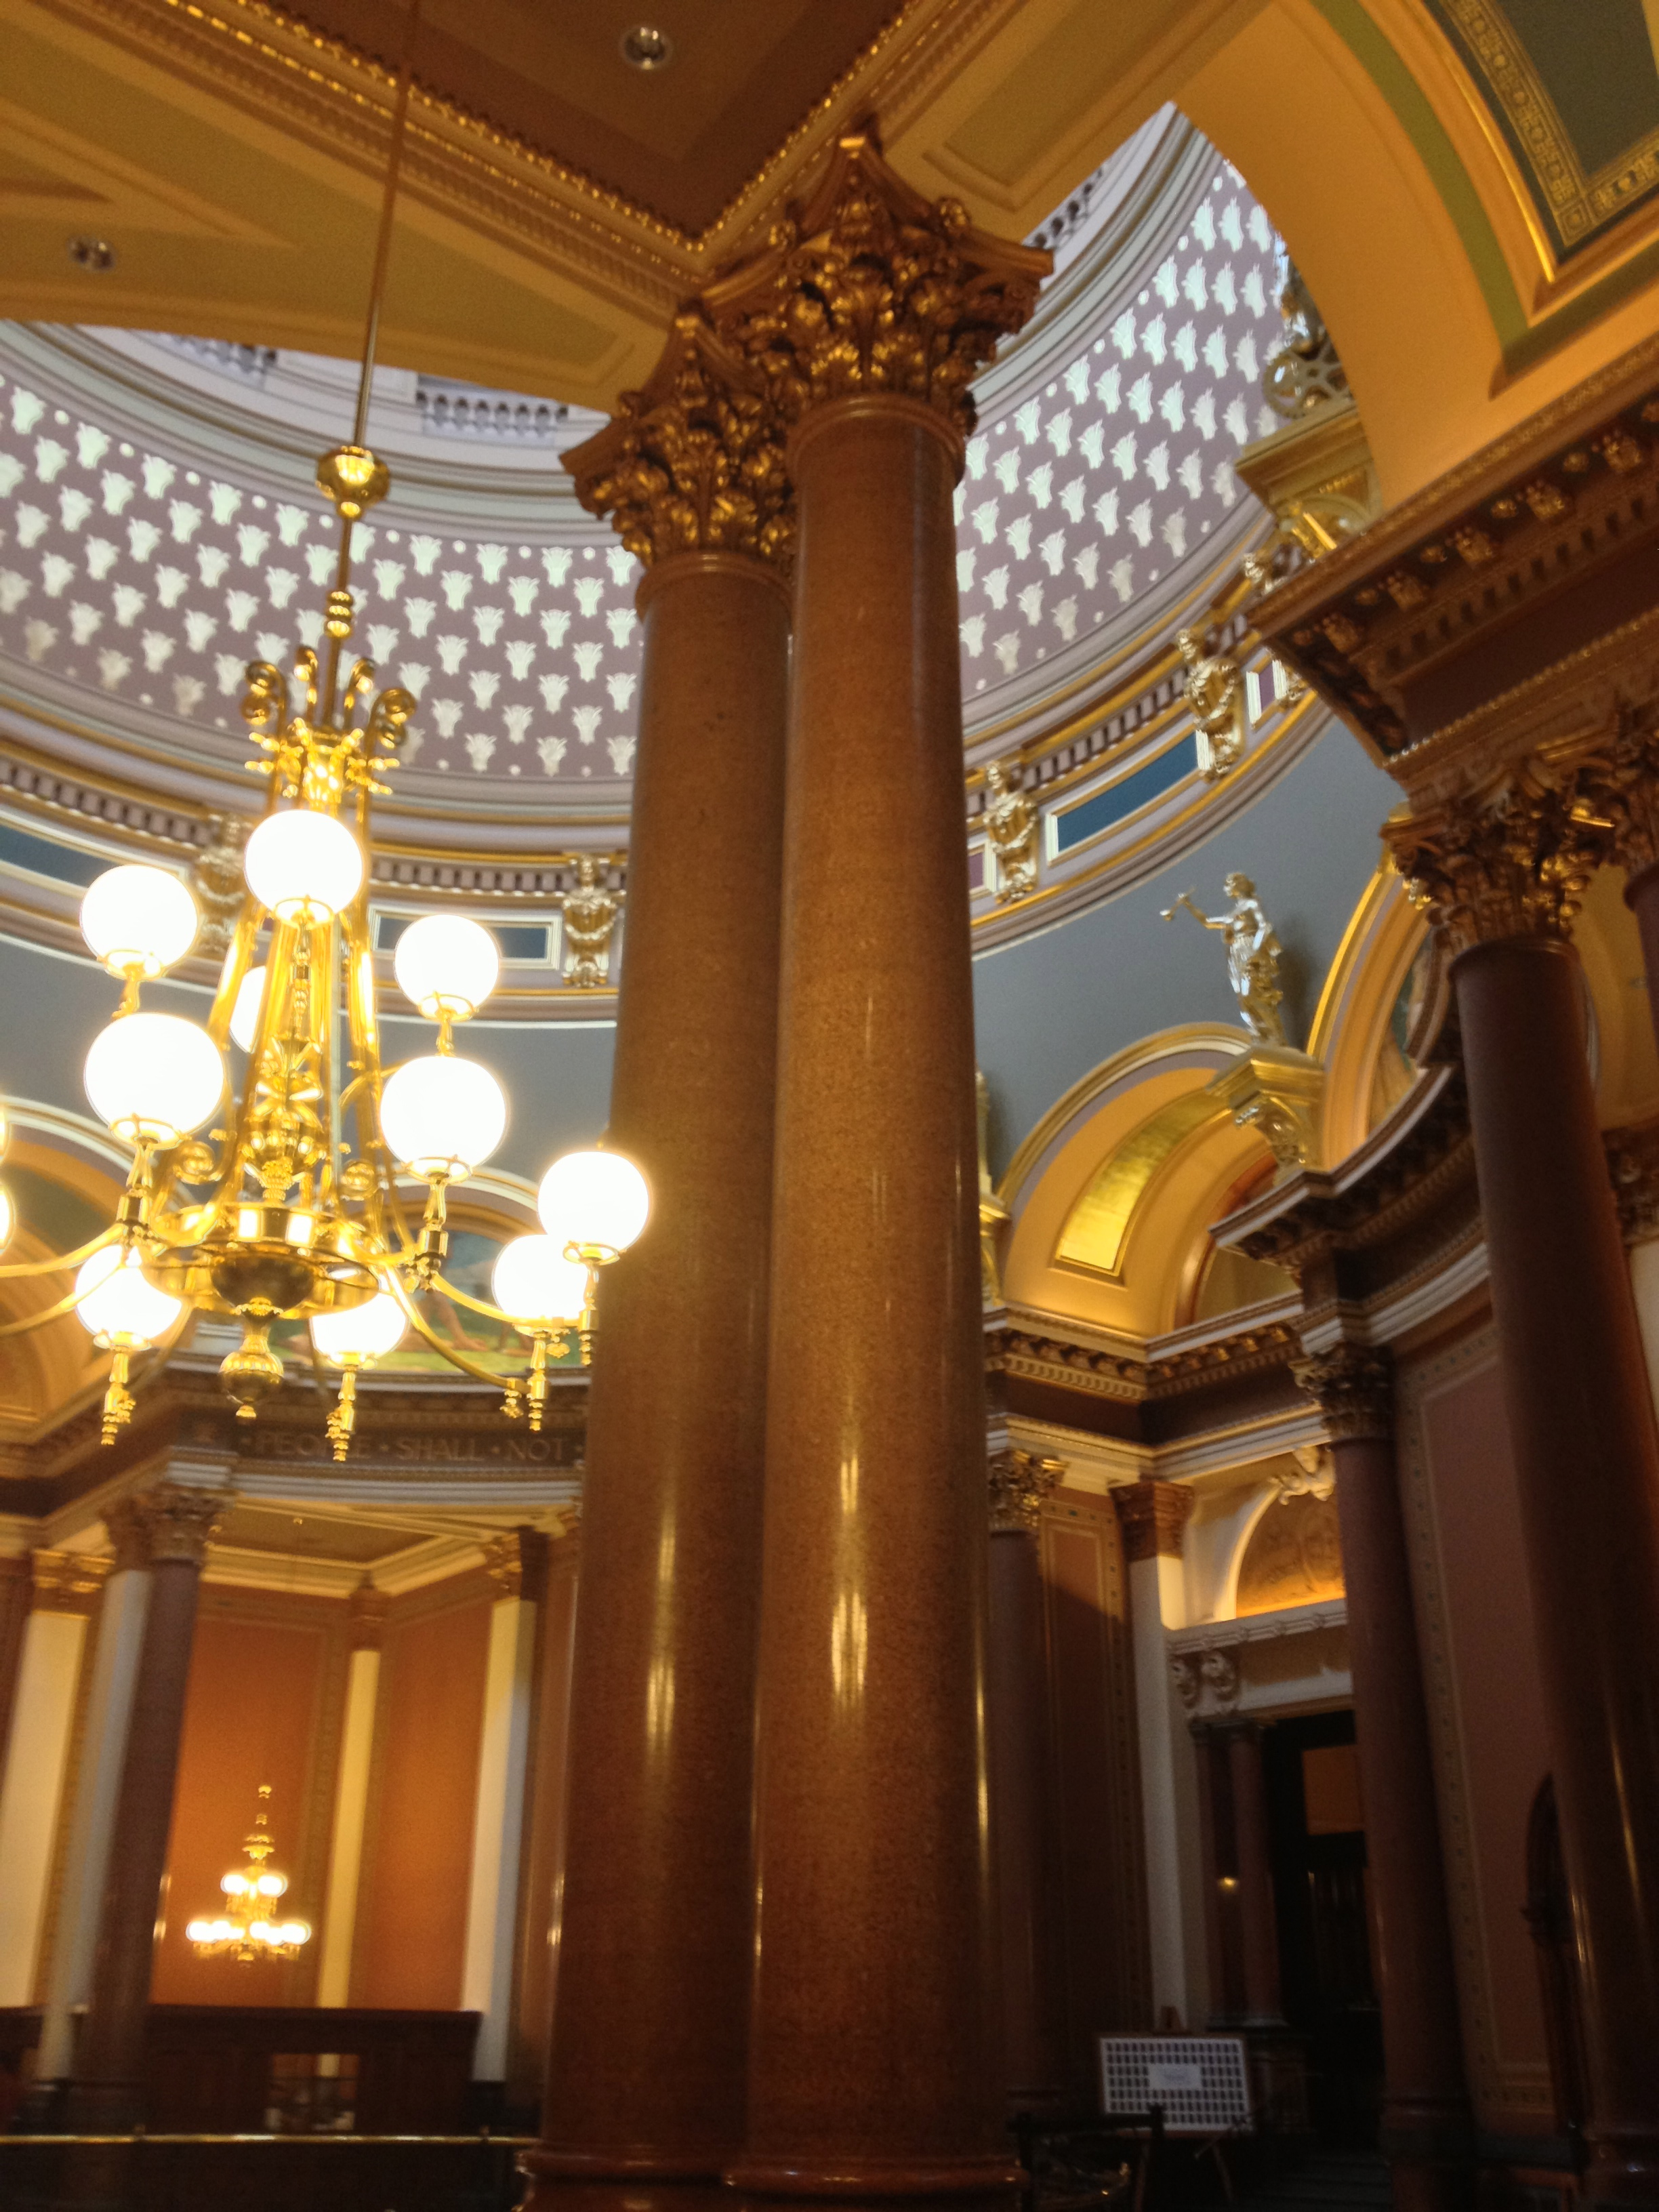 The Statehouse of this highly-engaged state is gorgeous.